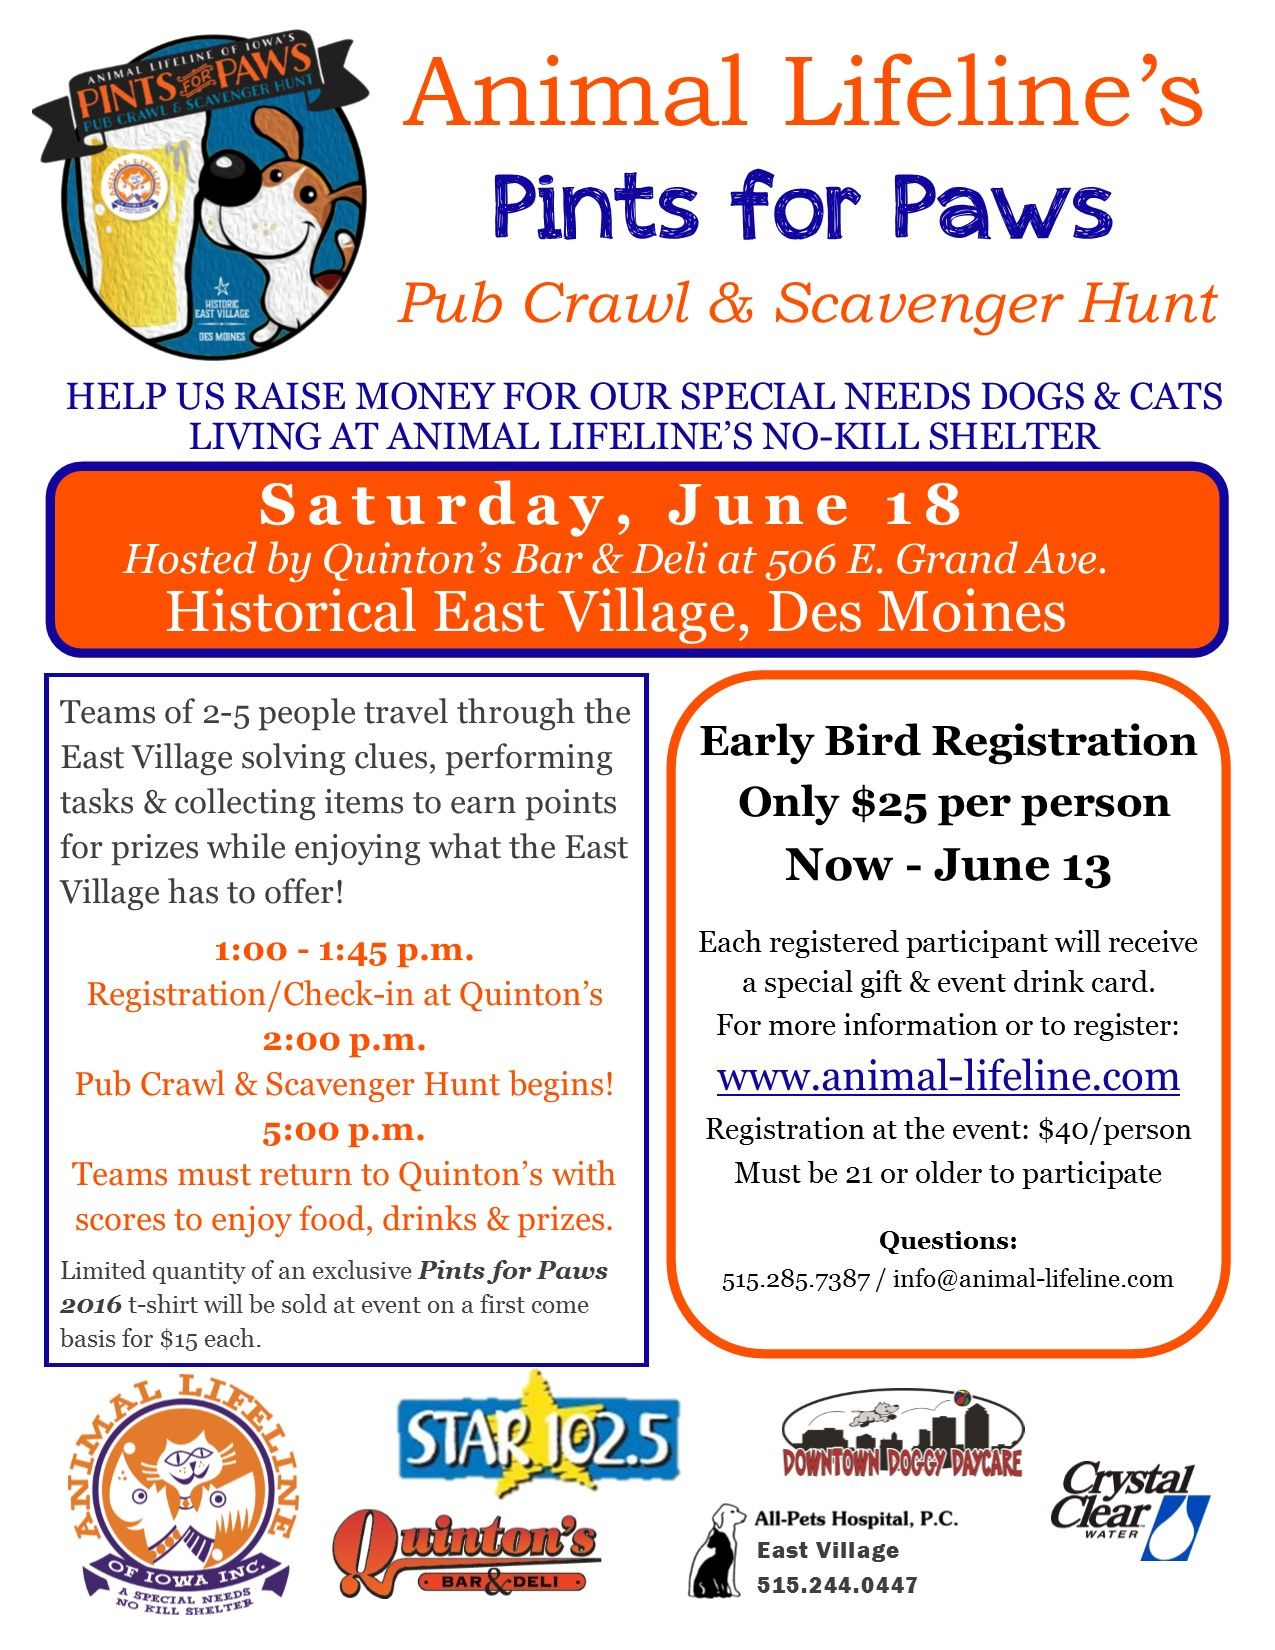 Pints For Paws Pub Crawl Scavenger Hunt Was A Huge Success For 2016 Raising Over 5 500 For Special Needs Dogs A Pub Crawl Special Needs How To Raise Money